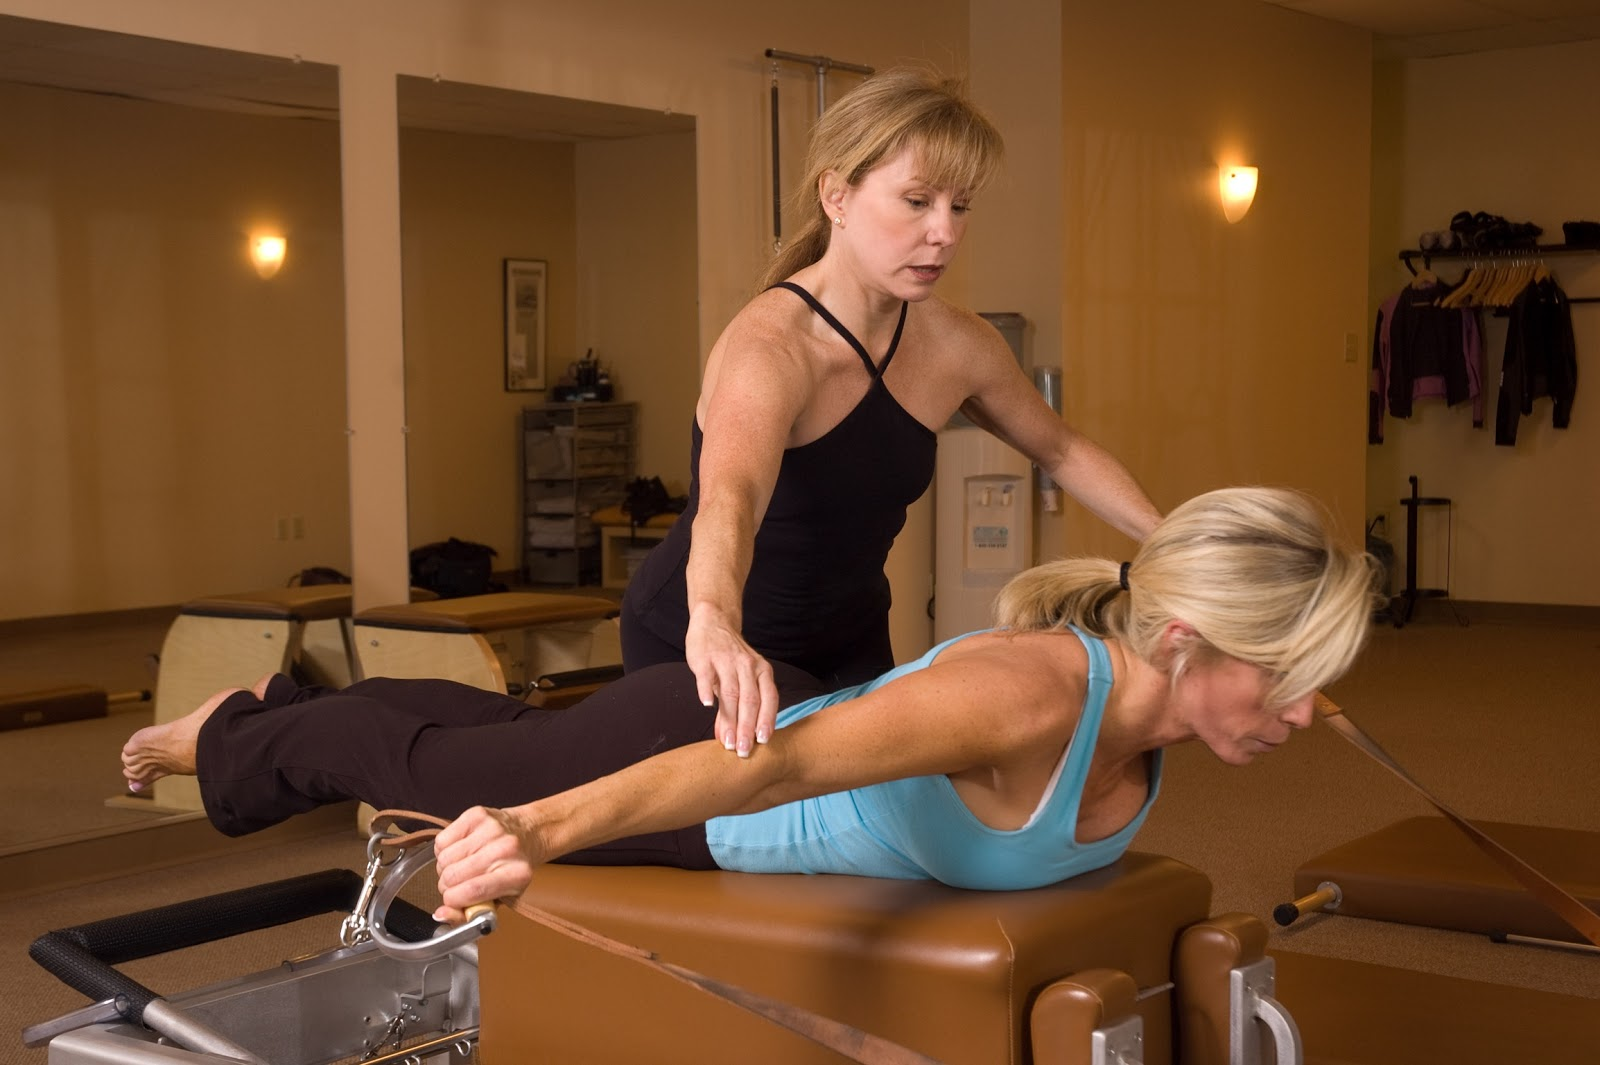 Owner of Touchstone Pilates, Lisa Pellow, guiding student